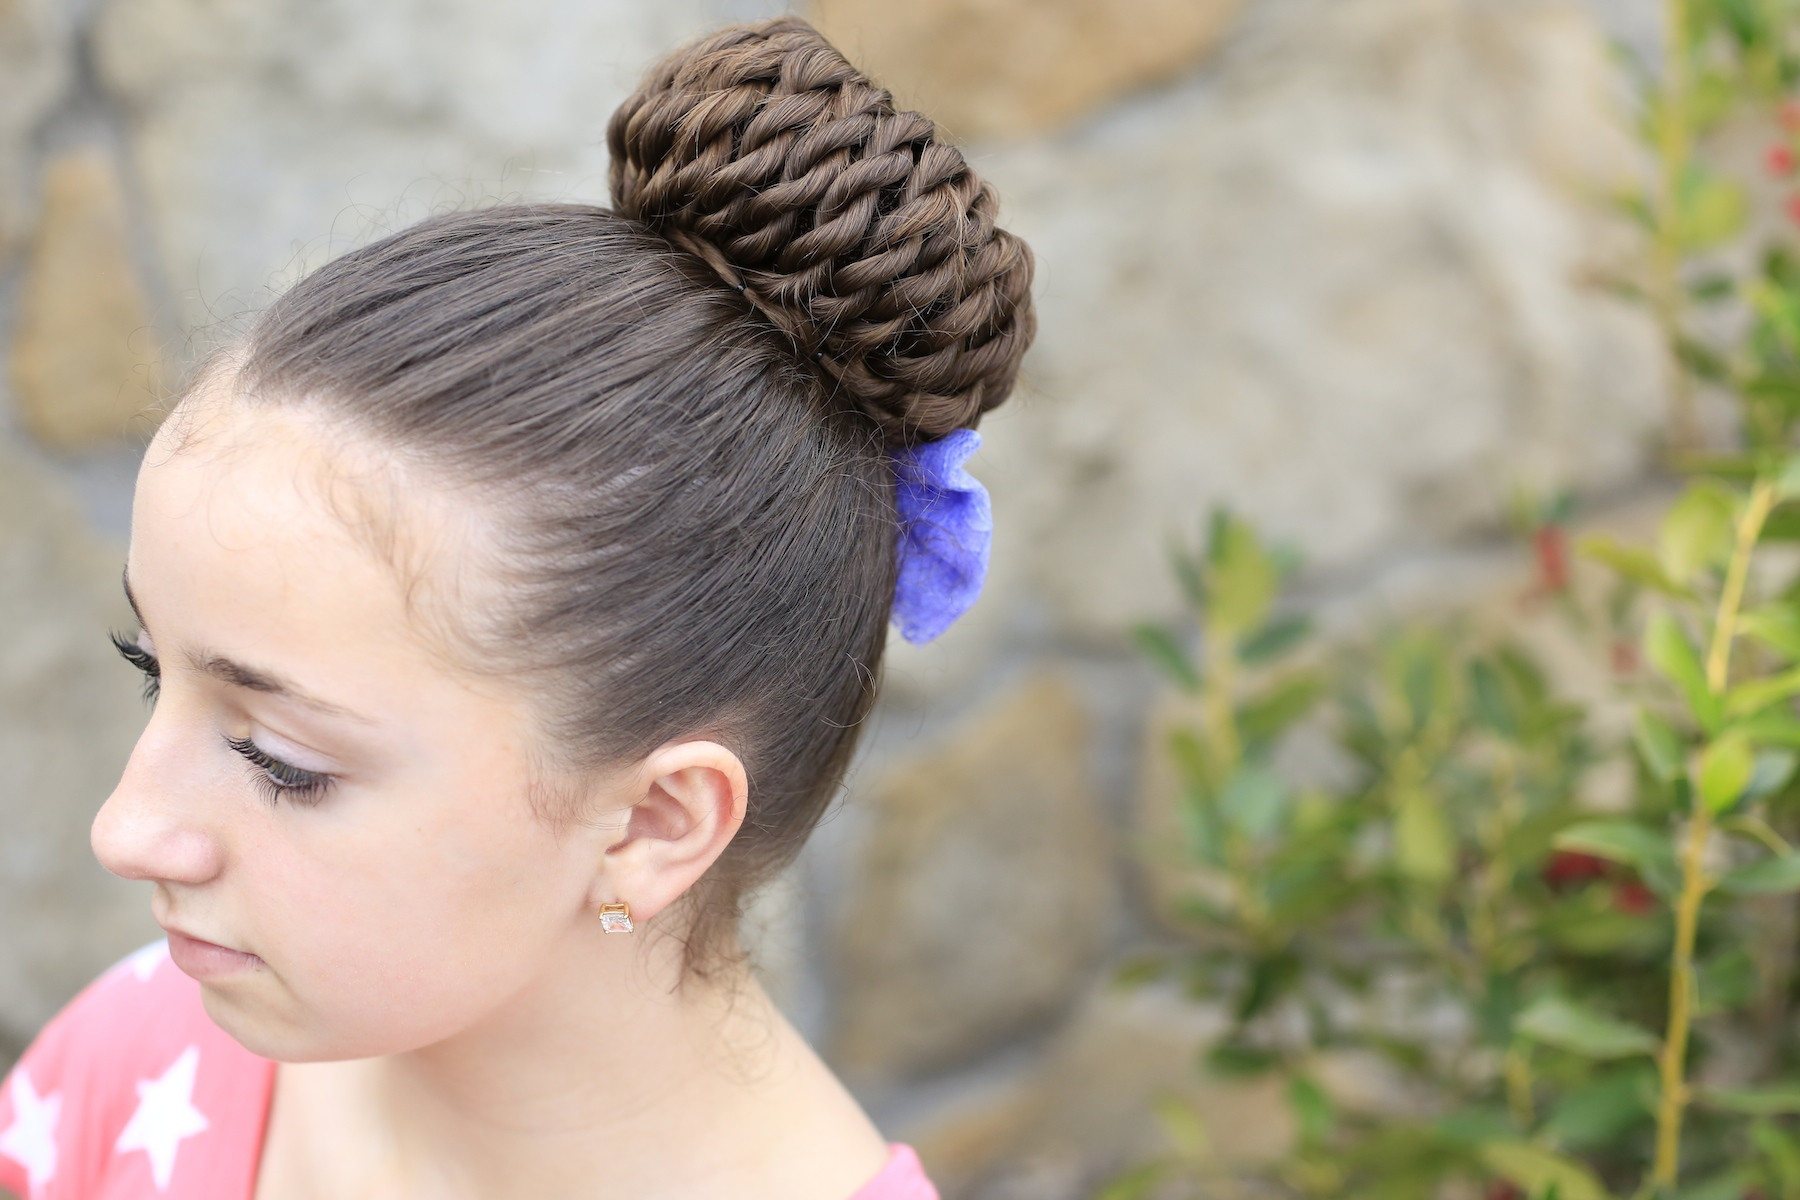 Best ideas about Prom Bun Hairstyles . Save or Pin Rope Twist Pinwheel Bun Prom Hairstyles Now.